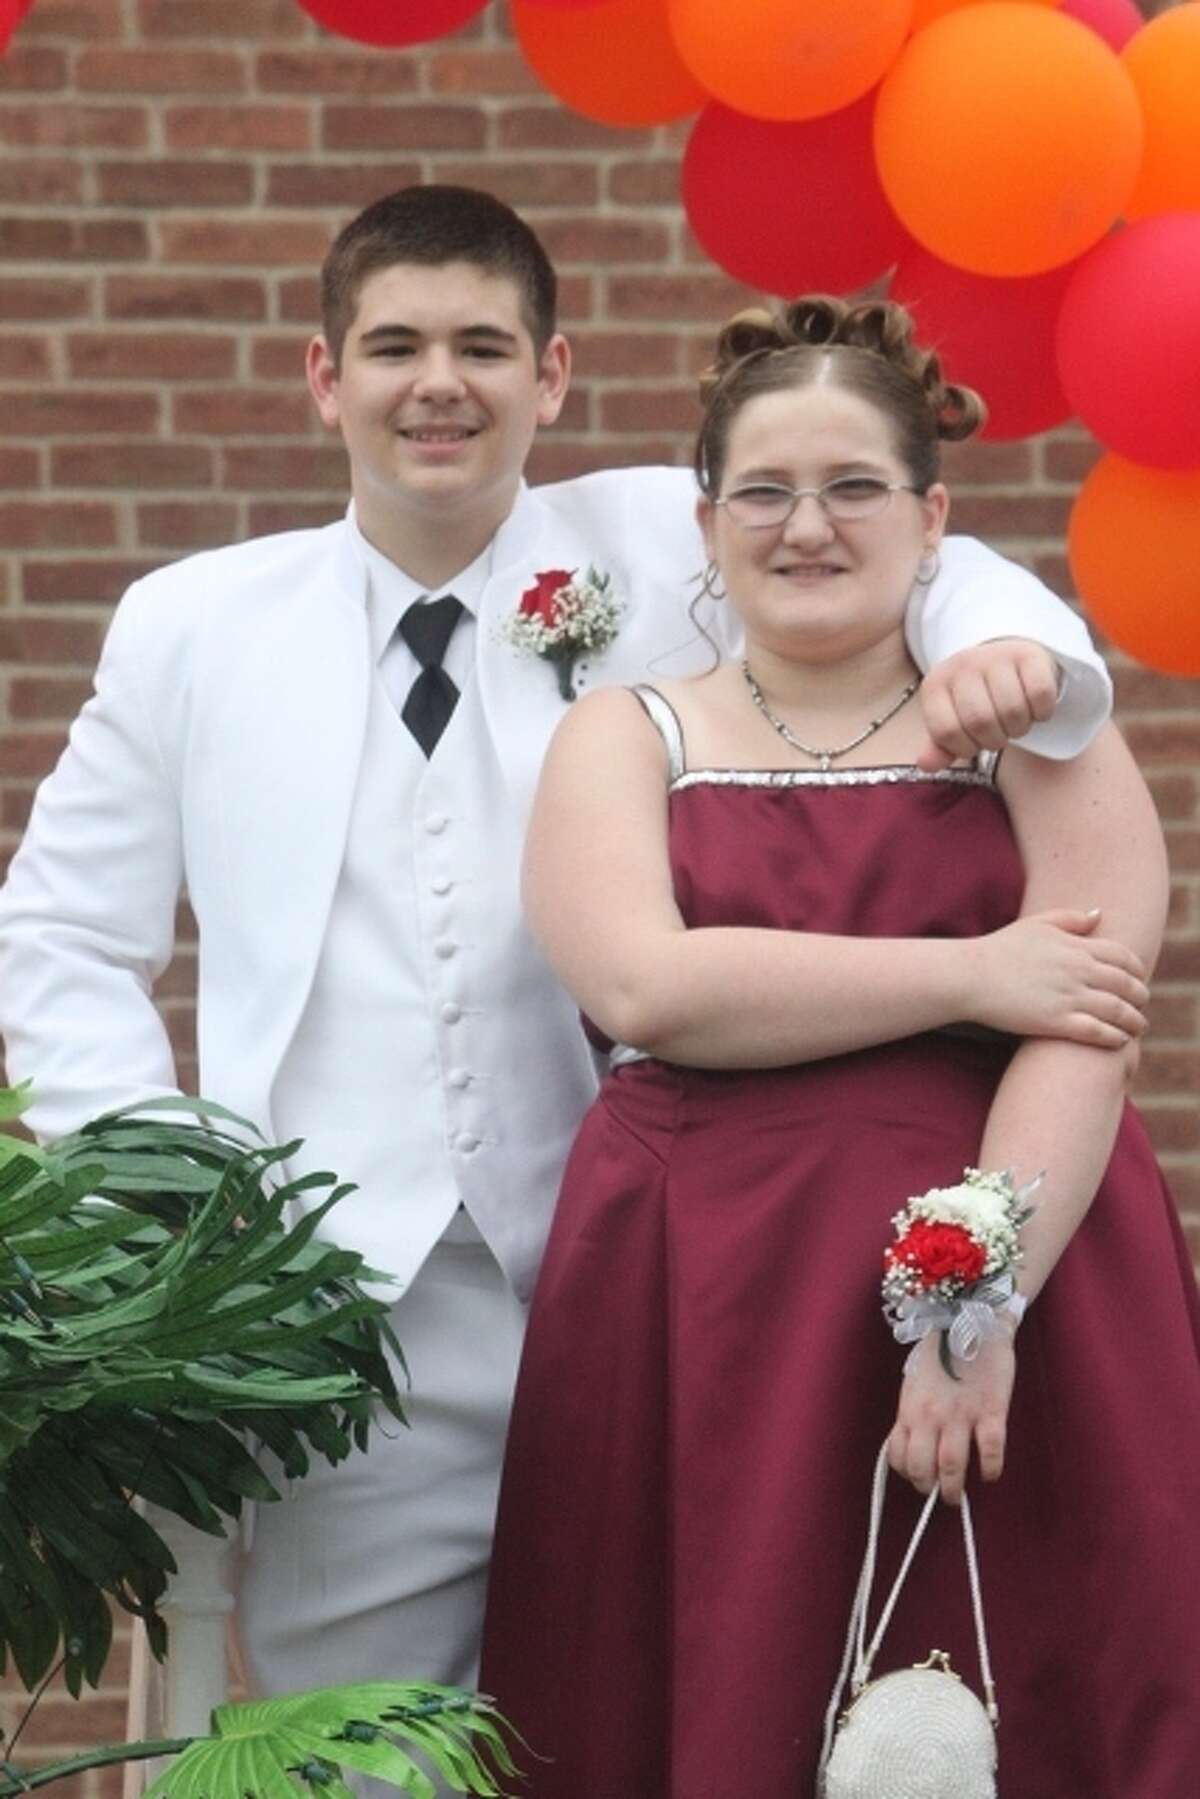 Were you Seen at Northeast Parent & Child Society's 2011 Starlite Prom at The School at Northeast?